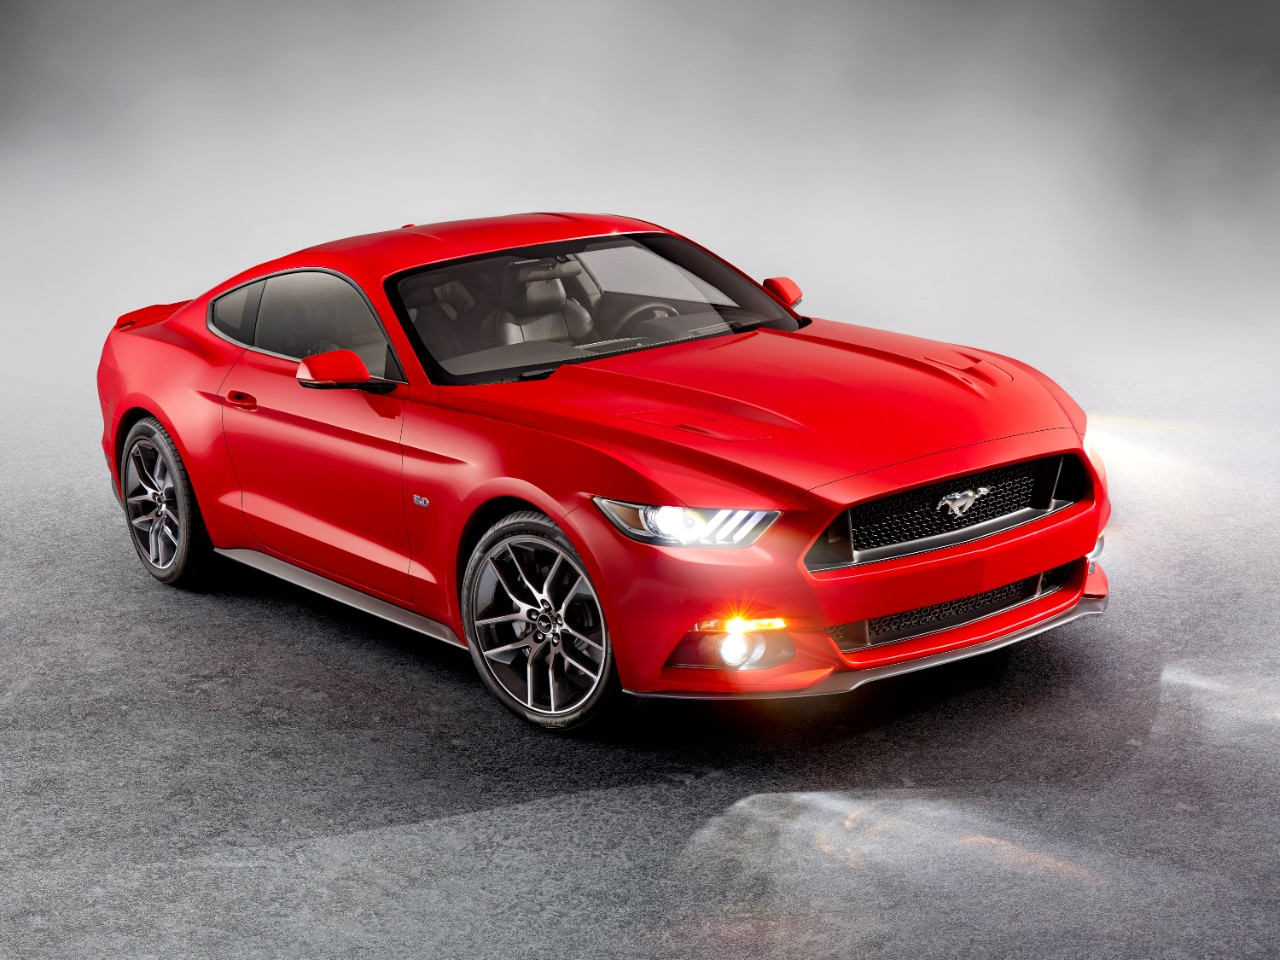 2014 BET Awards #MustangAndMe Contest and Giveaway!